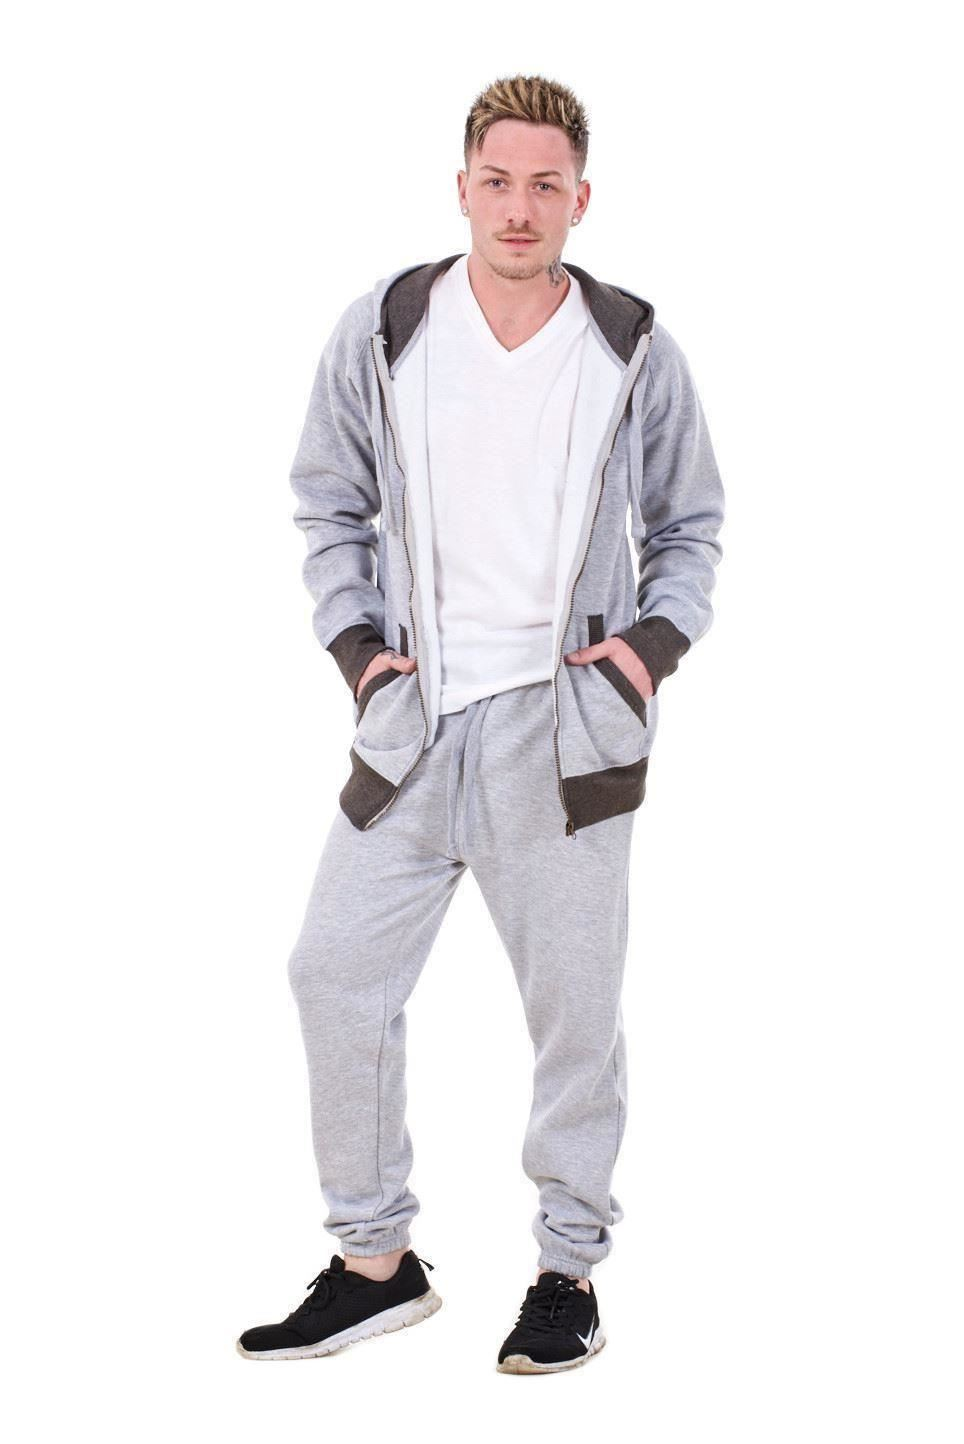 New-Mens-Tracksuit-Branded-Fleece-Hooded-Zipper-Cotton-Jogging-Bottoms-S-to-XXL thumbnail 6